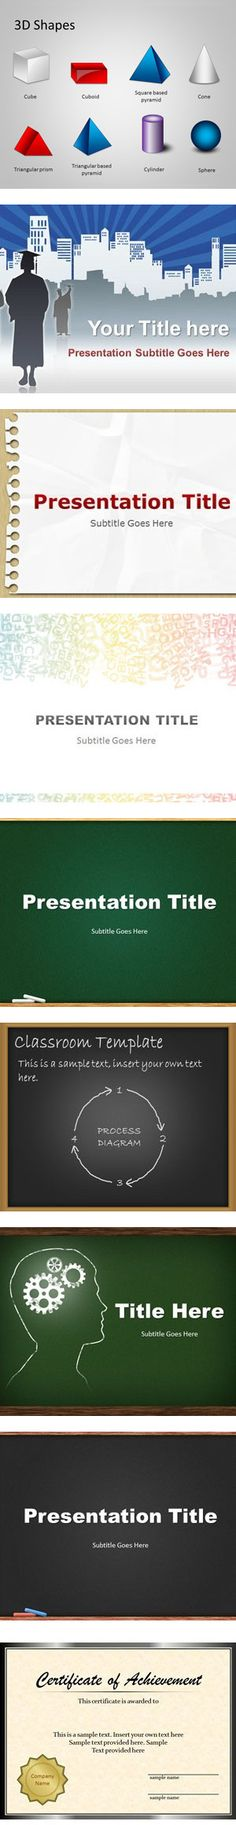 Pills Medical Powerpoint Template  Presentation